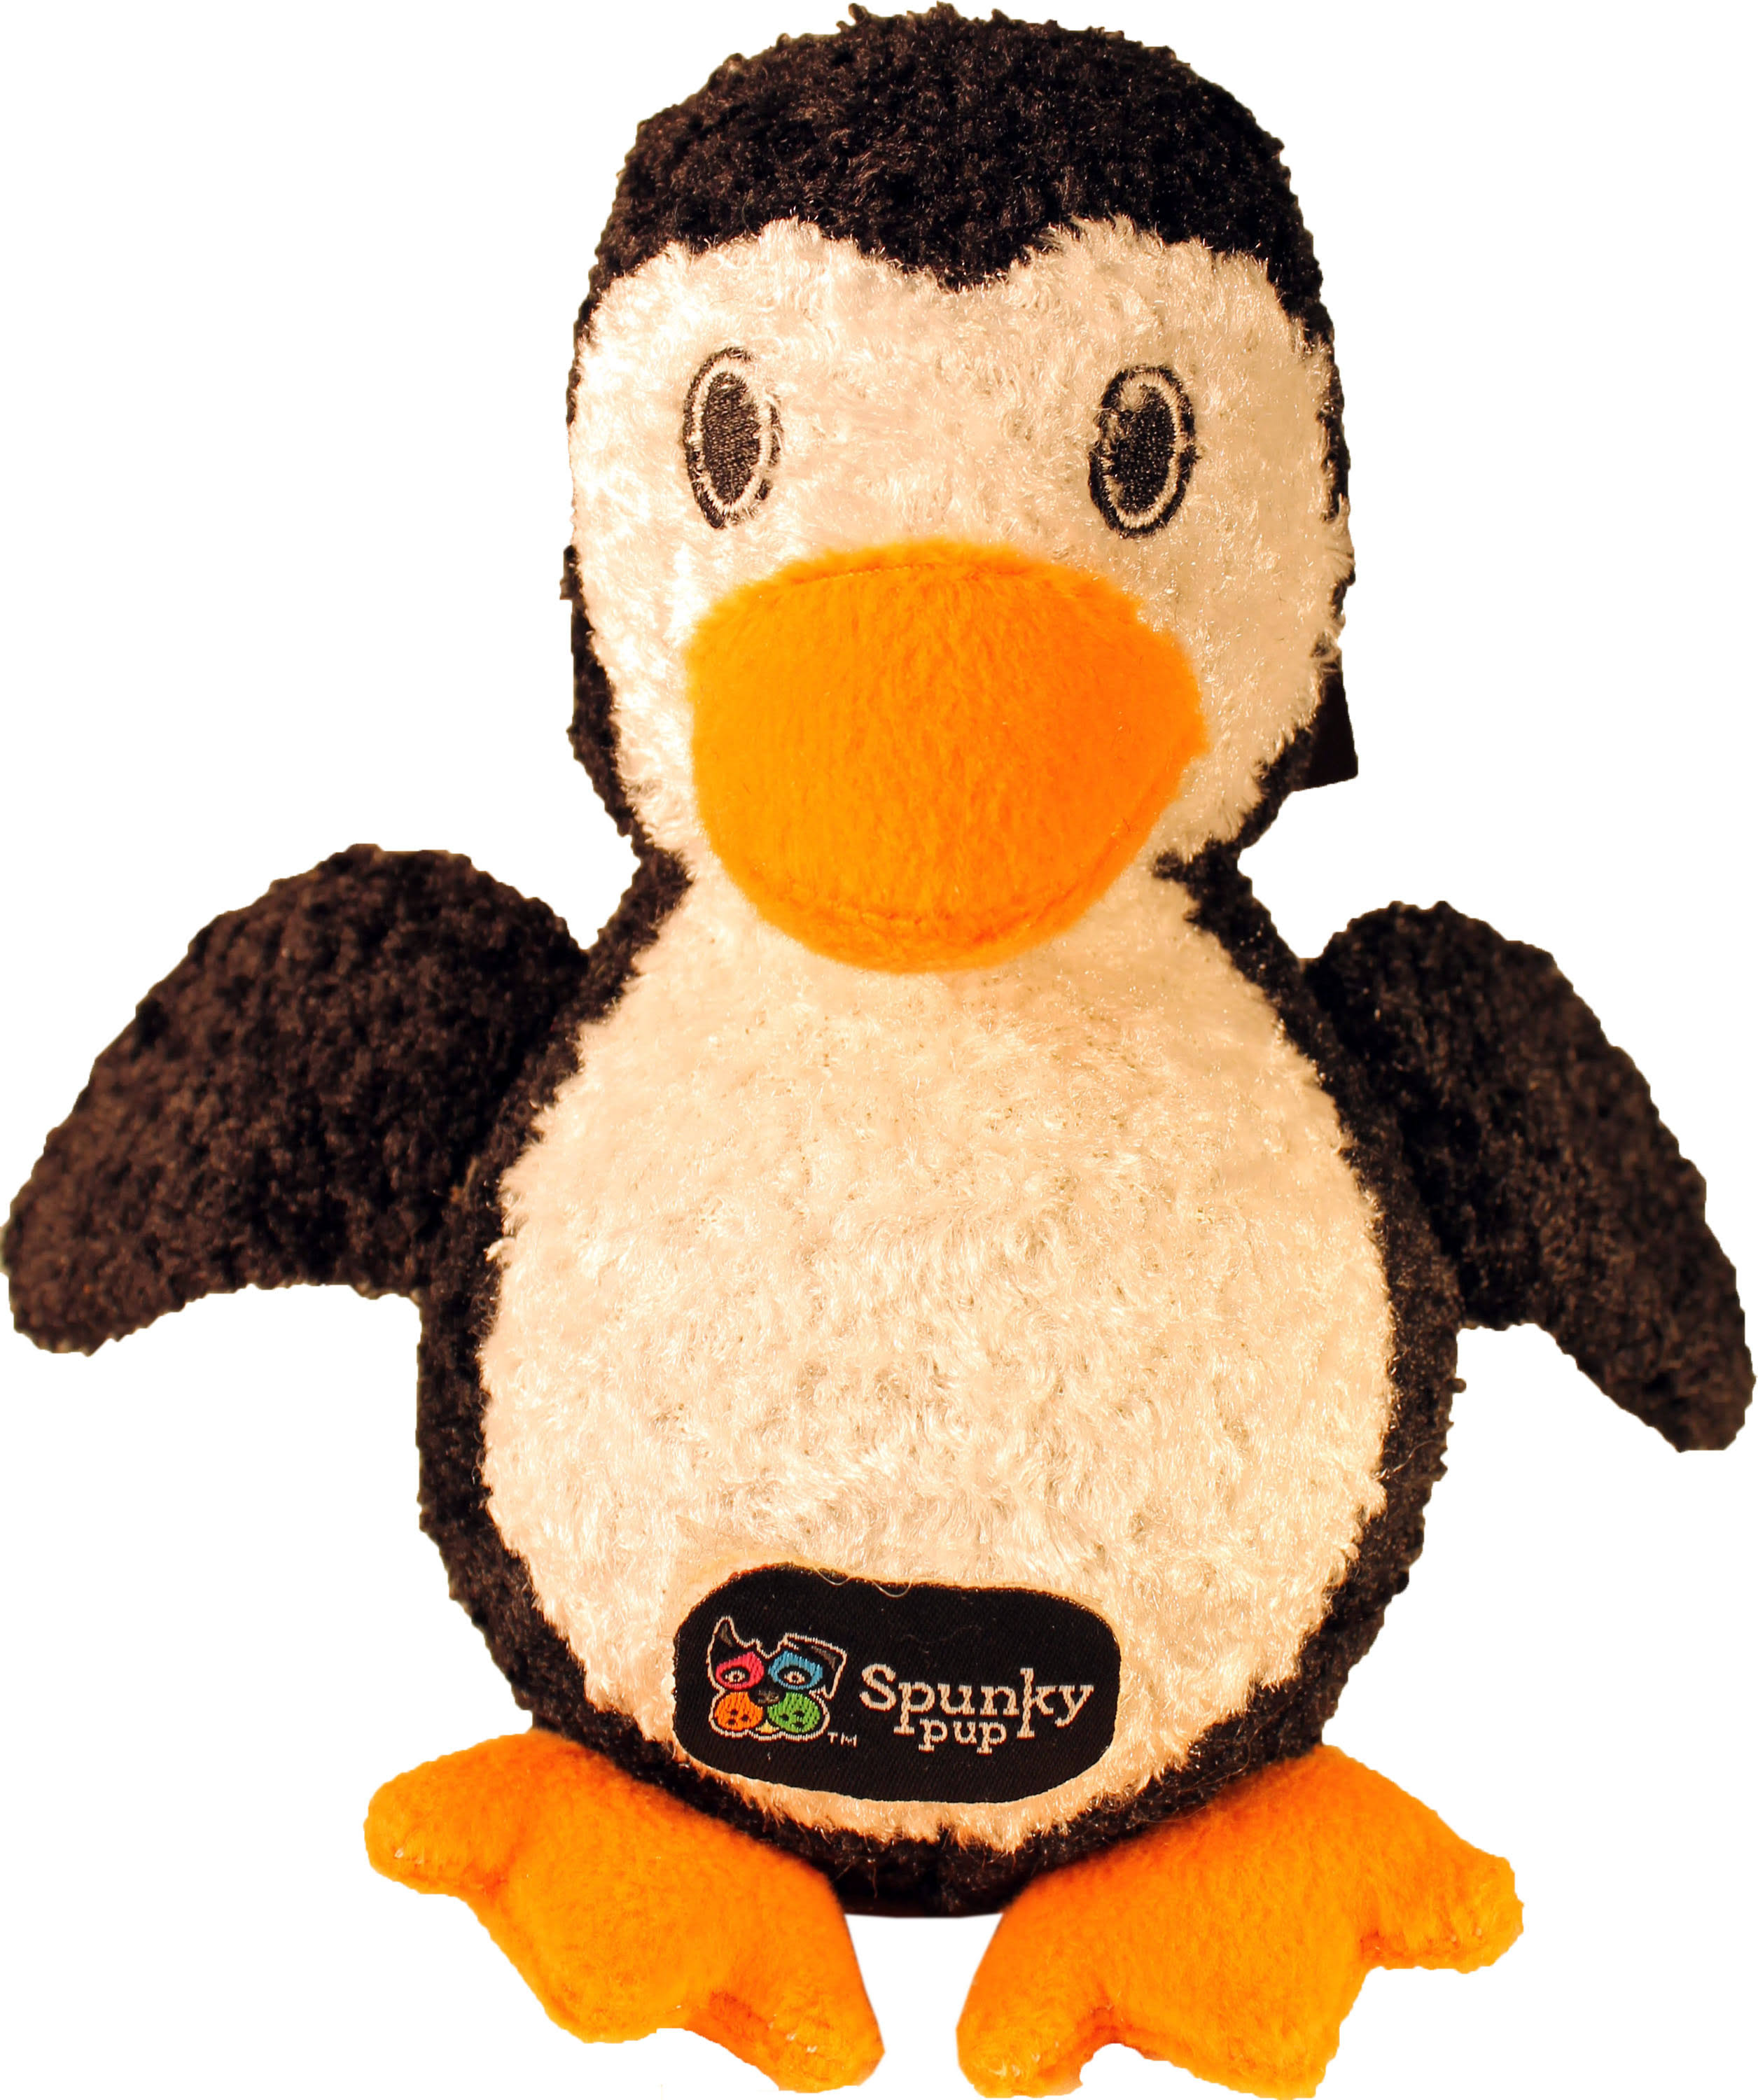 Spunky Pup Furry Friends Squeaker Ball Dog Toy - Penguin